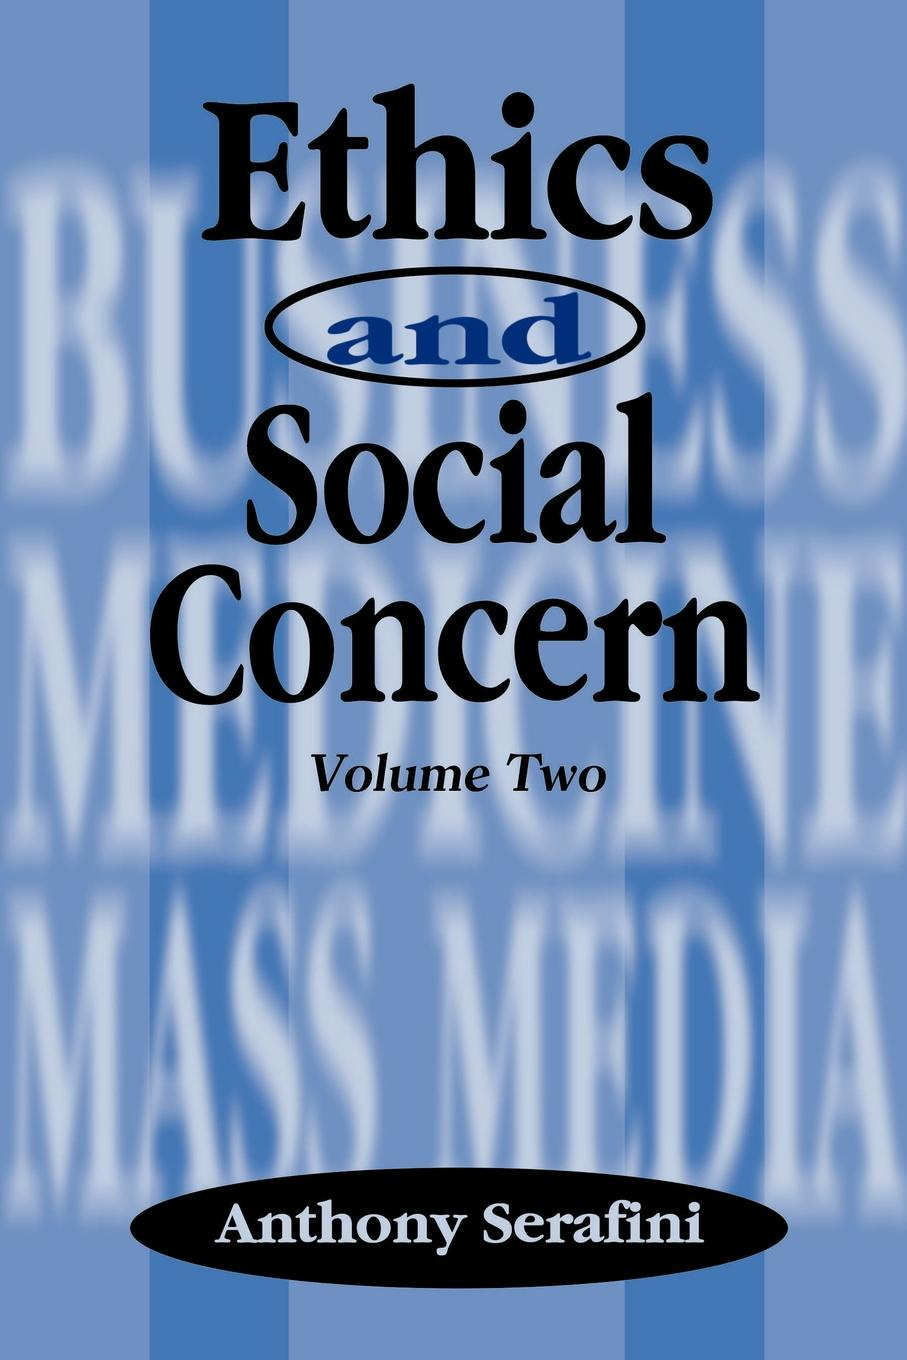 Ethics and Social Concern.